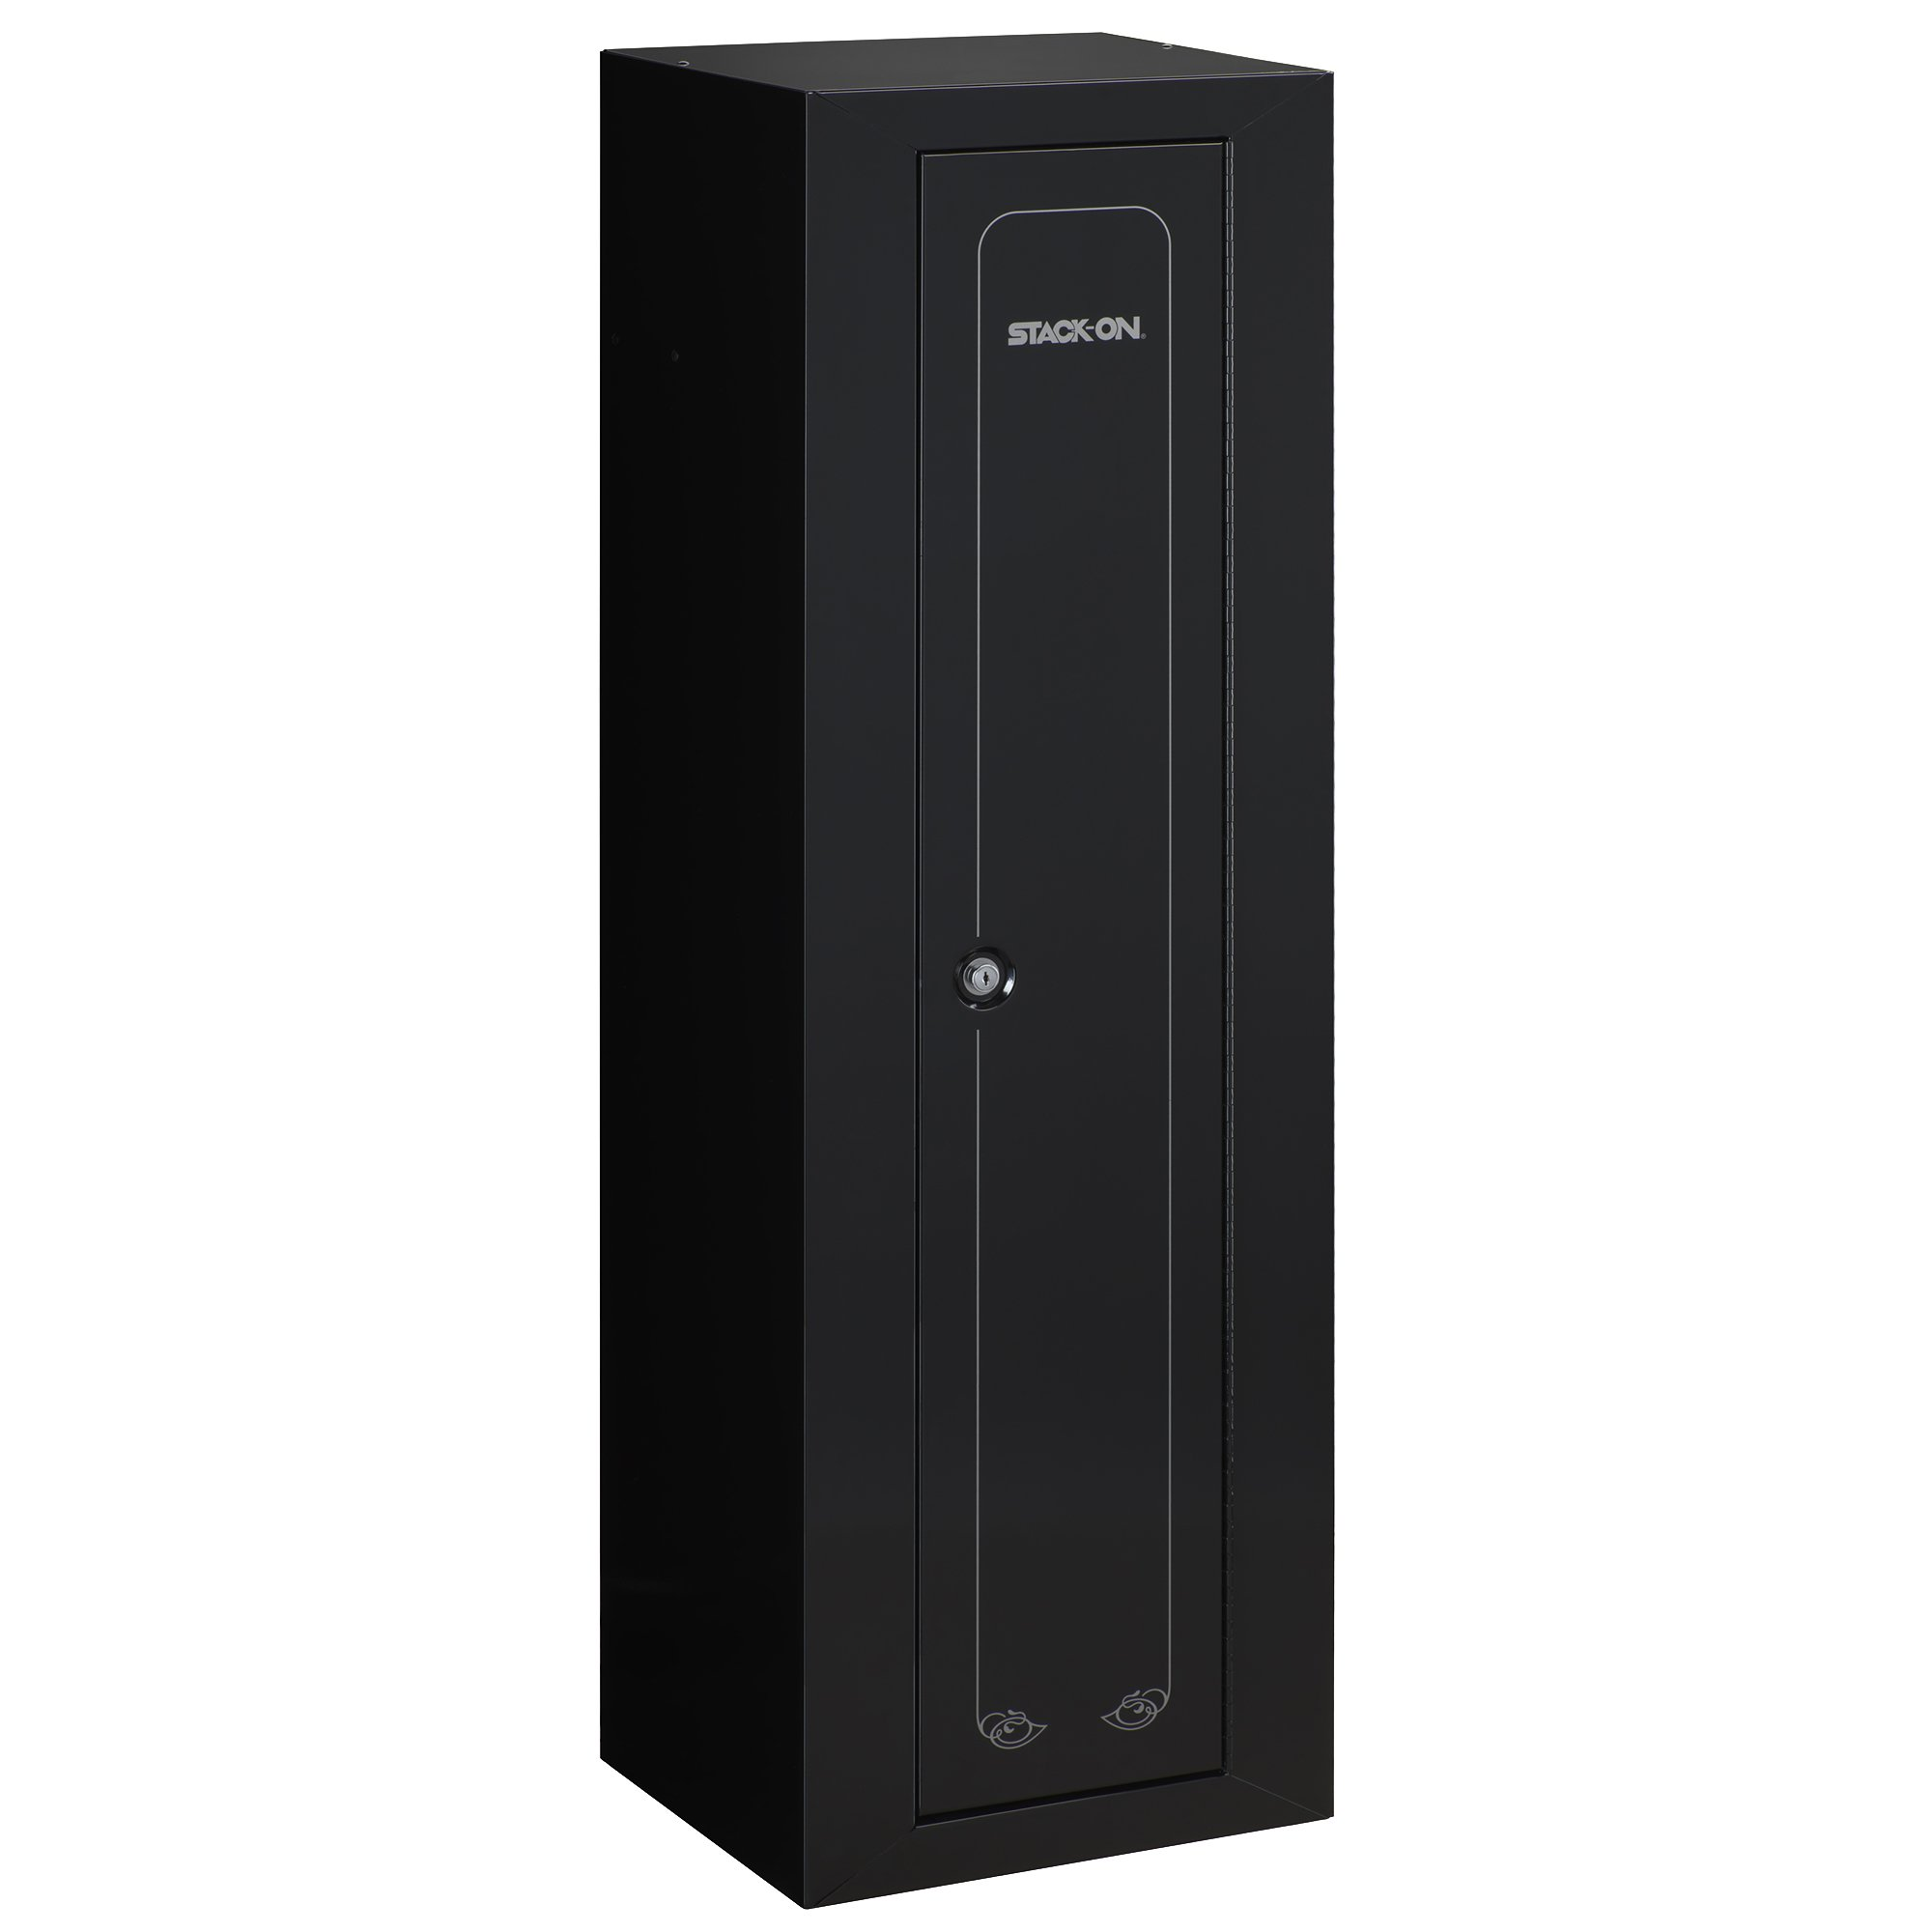 Stack-On GCB-910 Steel 10-Gun Compact Steel Security Cabinet, Black by Stack-On